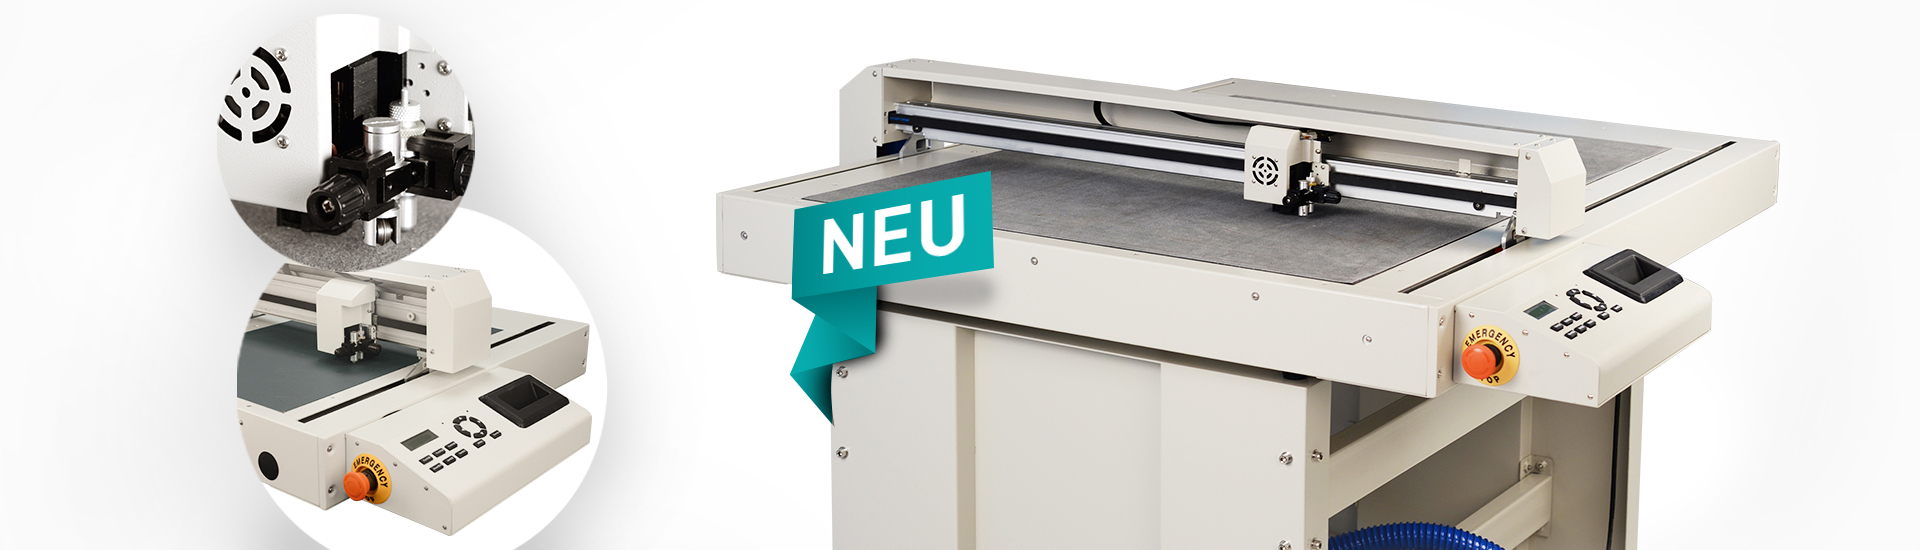 New Flatbed Vinyl Cutters from Secabo